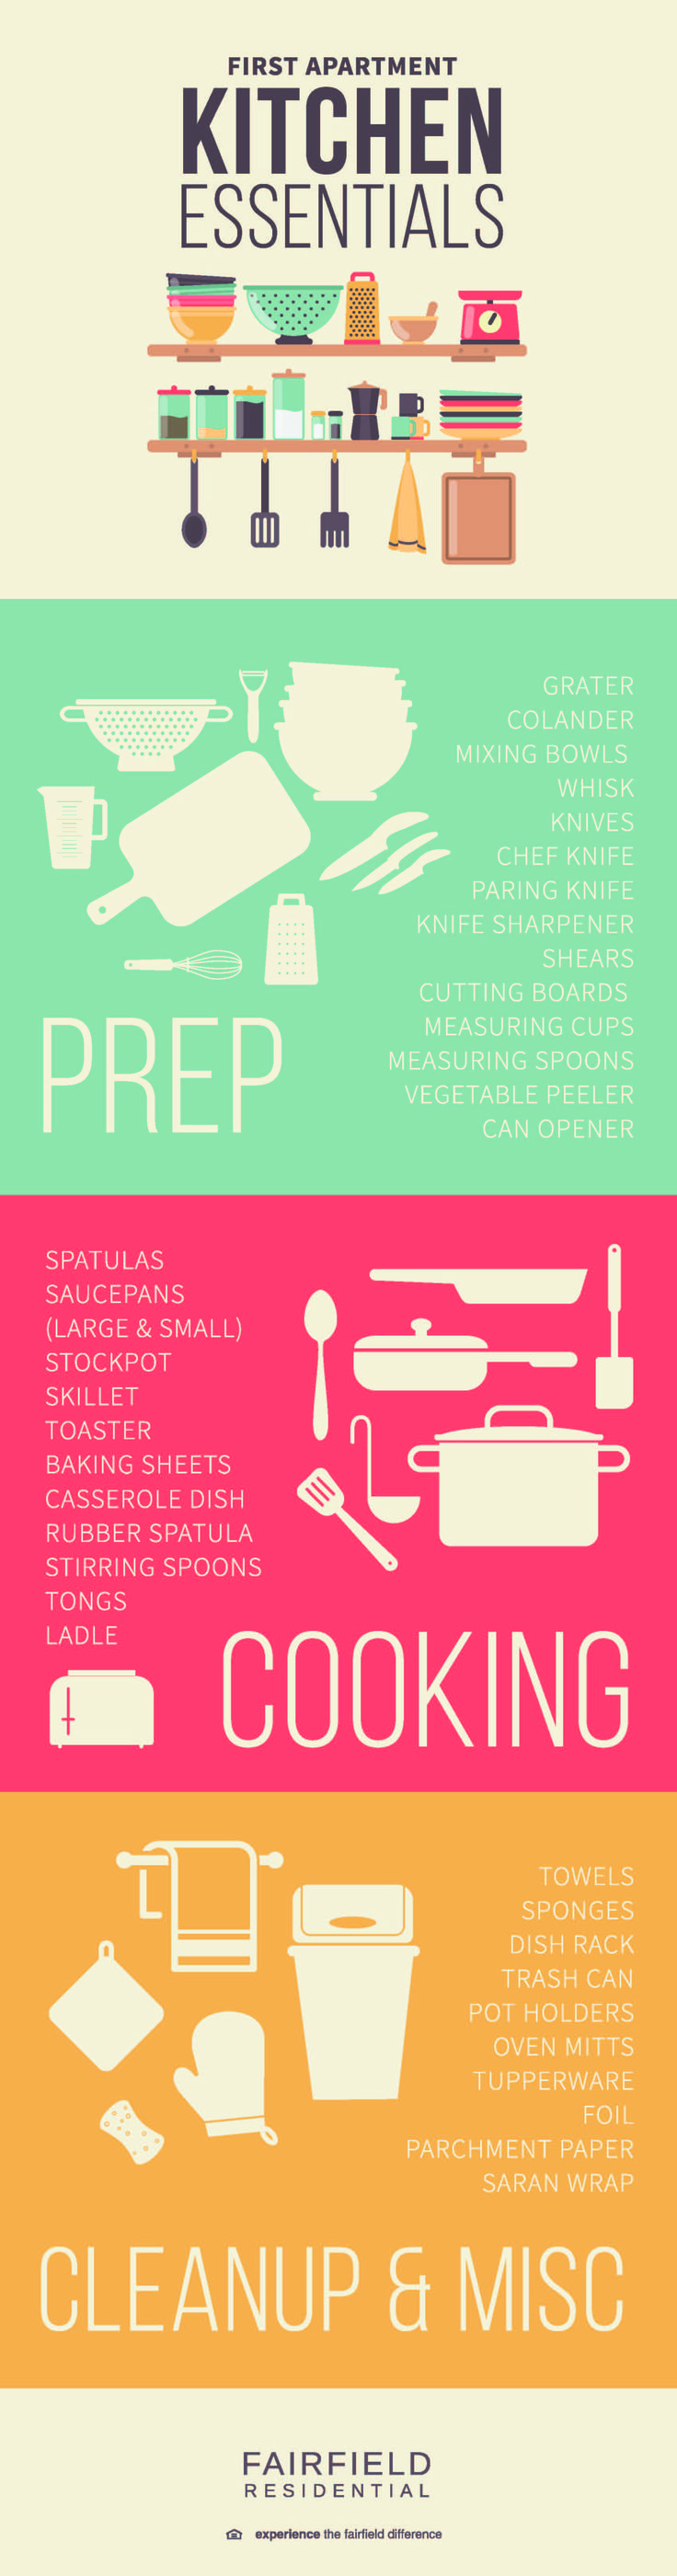 Get your first apartment equipt with the basic kitchen essentials! #kitchen…